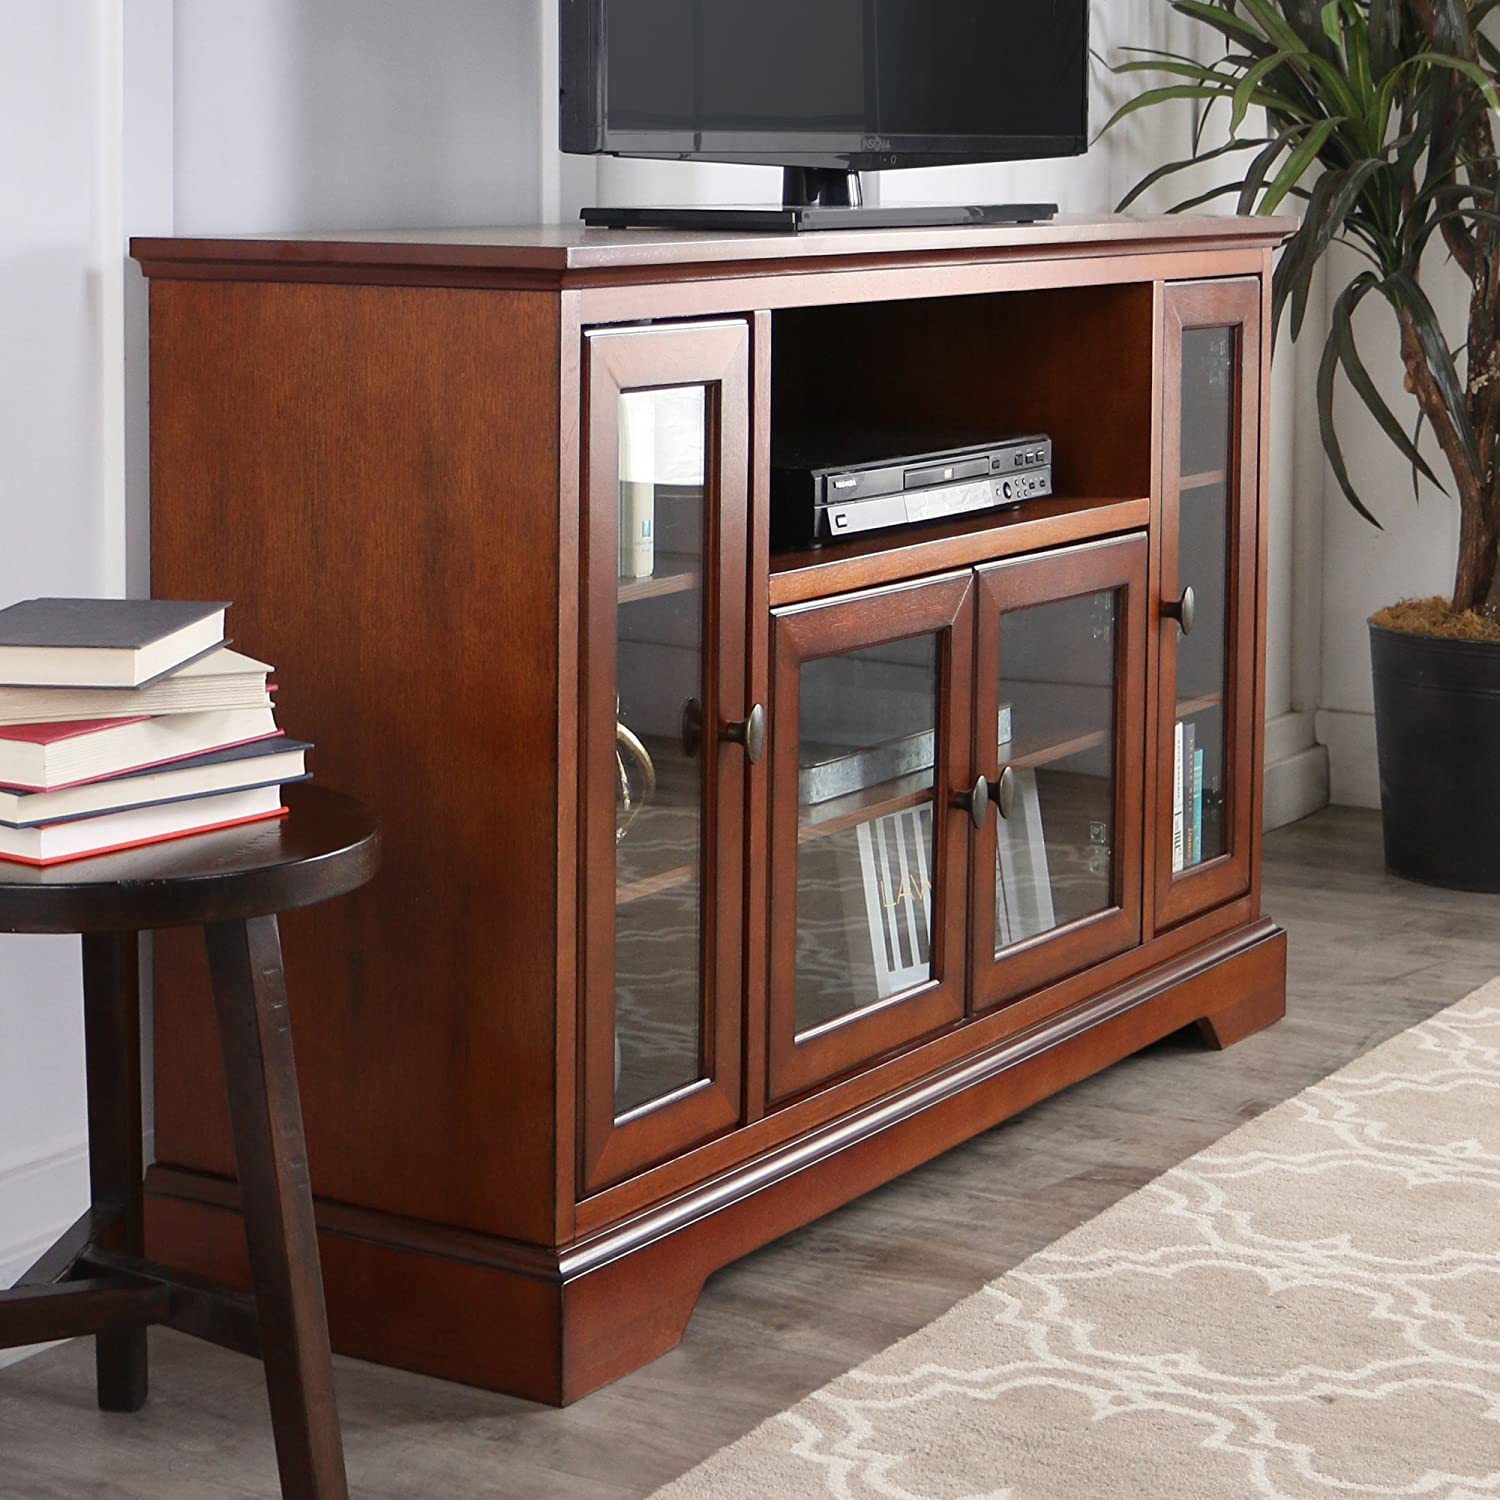 we furniture 52 wood highboy style tall tv stand rustic brown entertainment centers stands. Black Bedroom Furniture Sets. Home Design Ideas